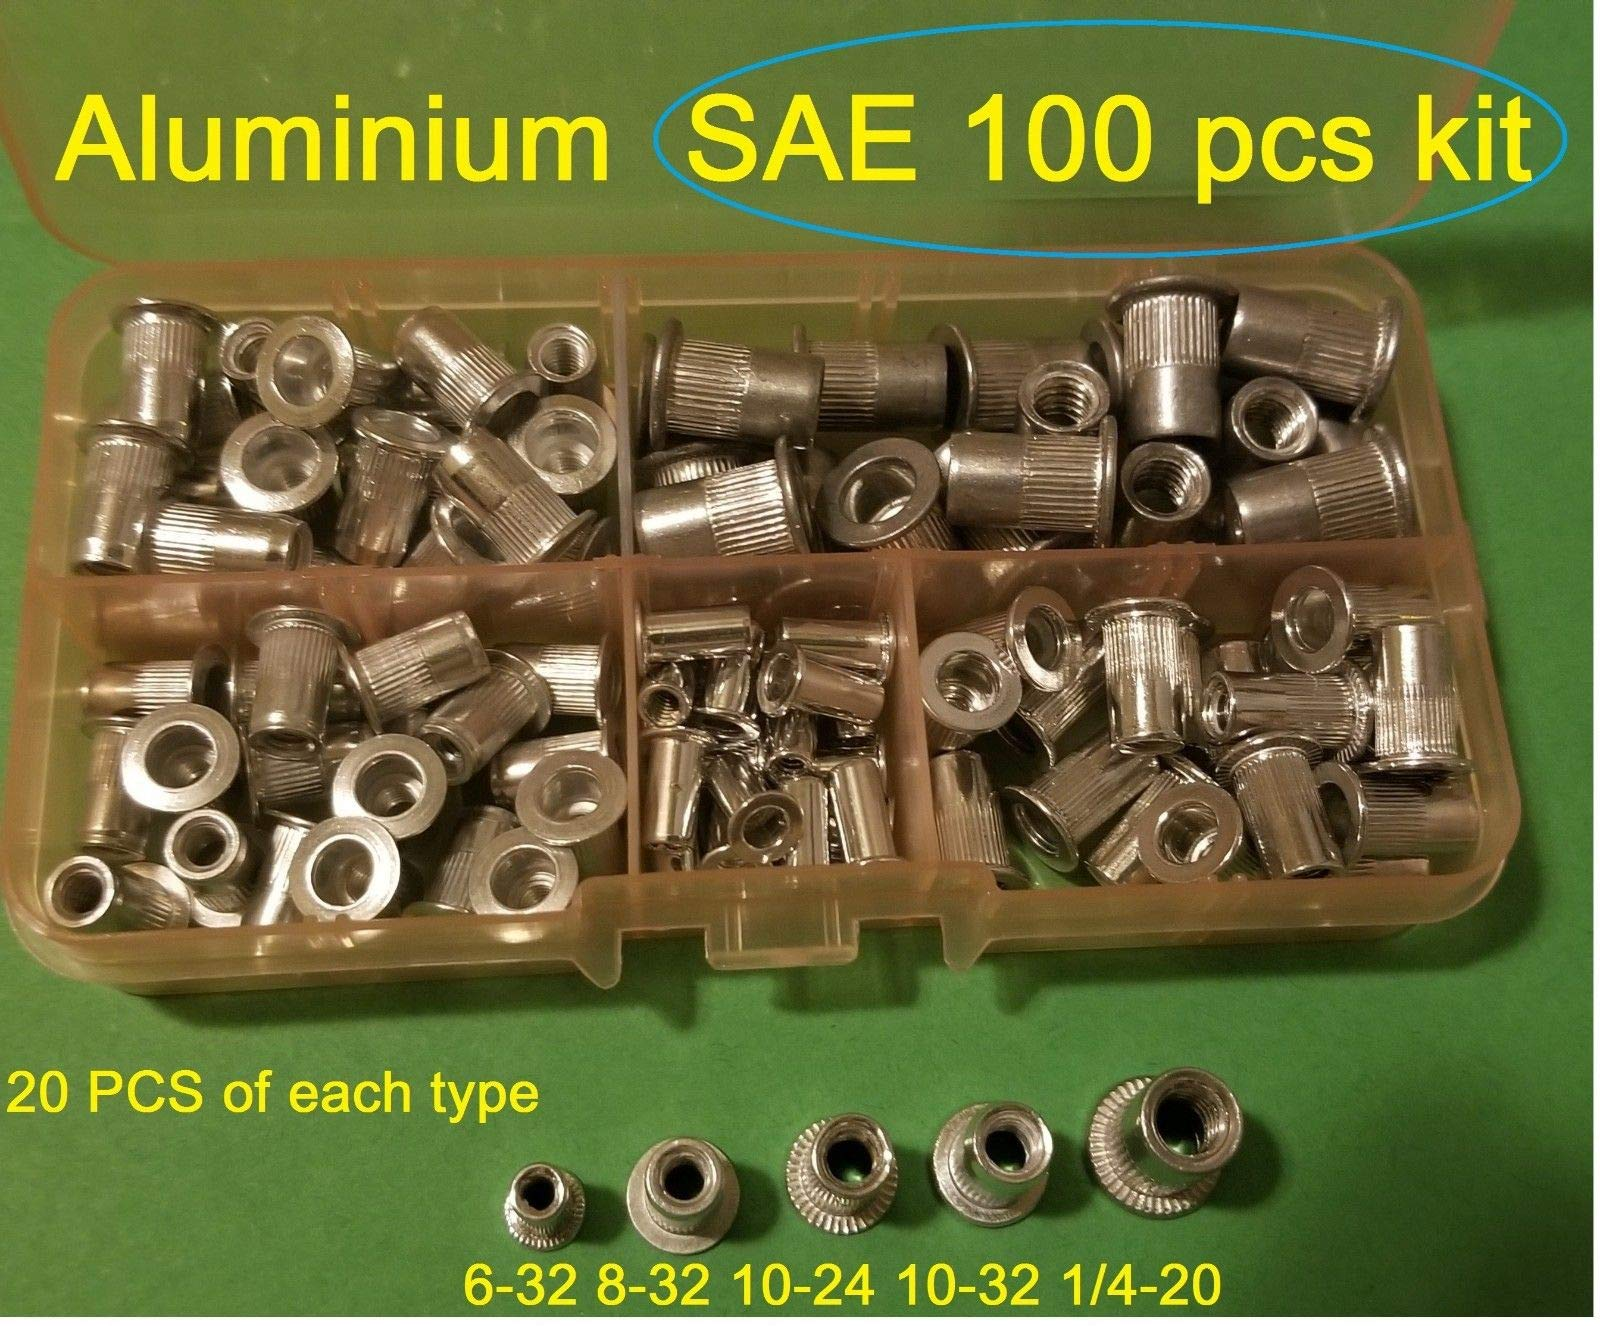 100 Pcs SAE Rivet Nut Rivnut Aluminum Assort Kit 6-32 8-32 10-24 10-32 1/4-20